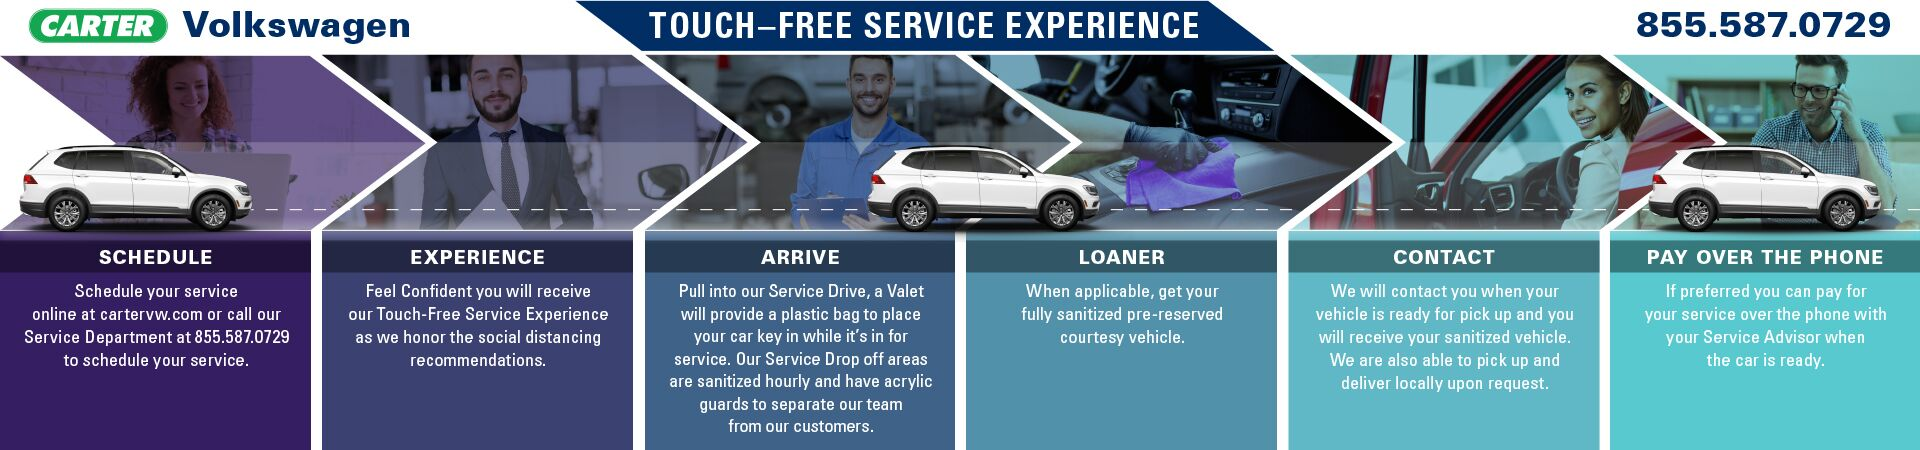 Touch-Free Service Experience